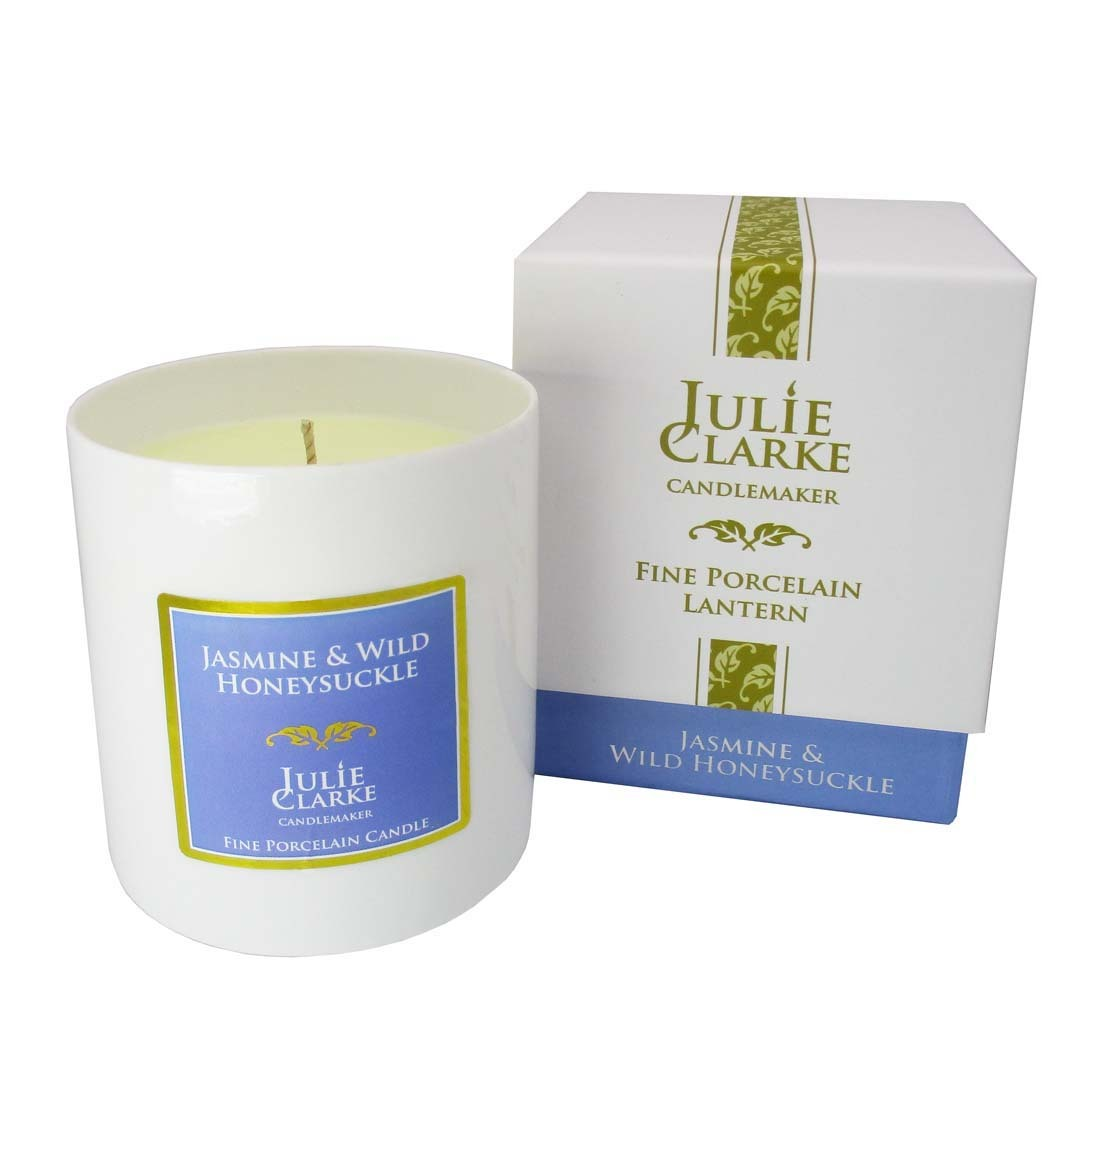 Jasmine & Wild Honeysuckle White Porcelain Candle